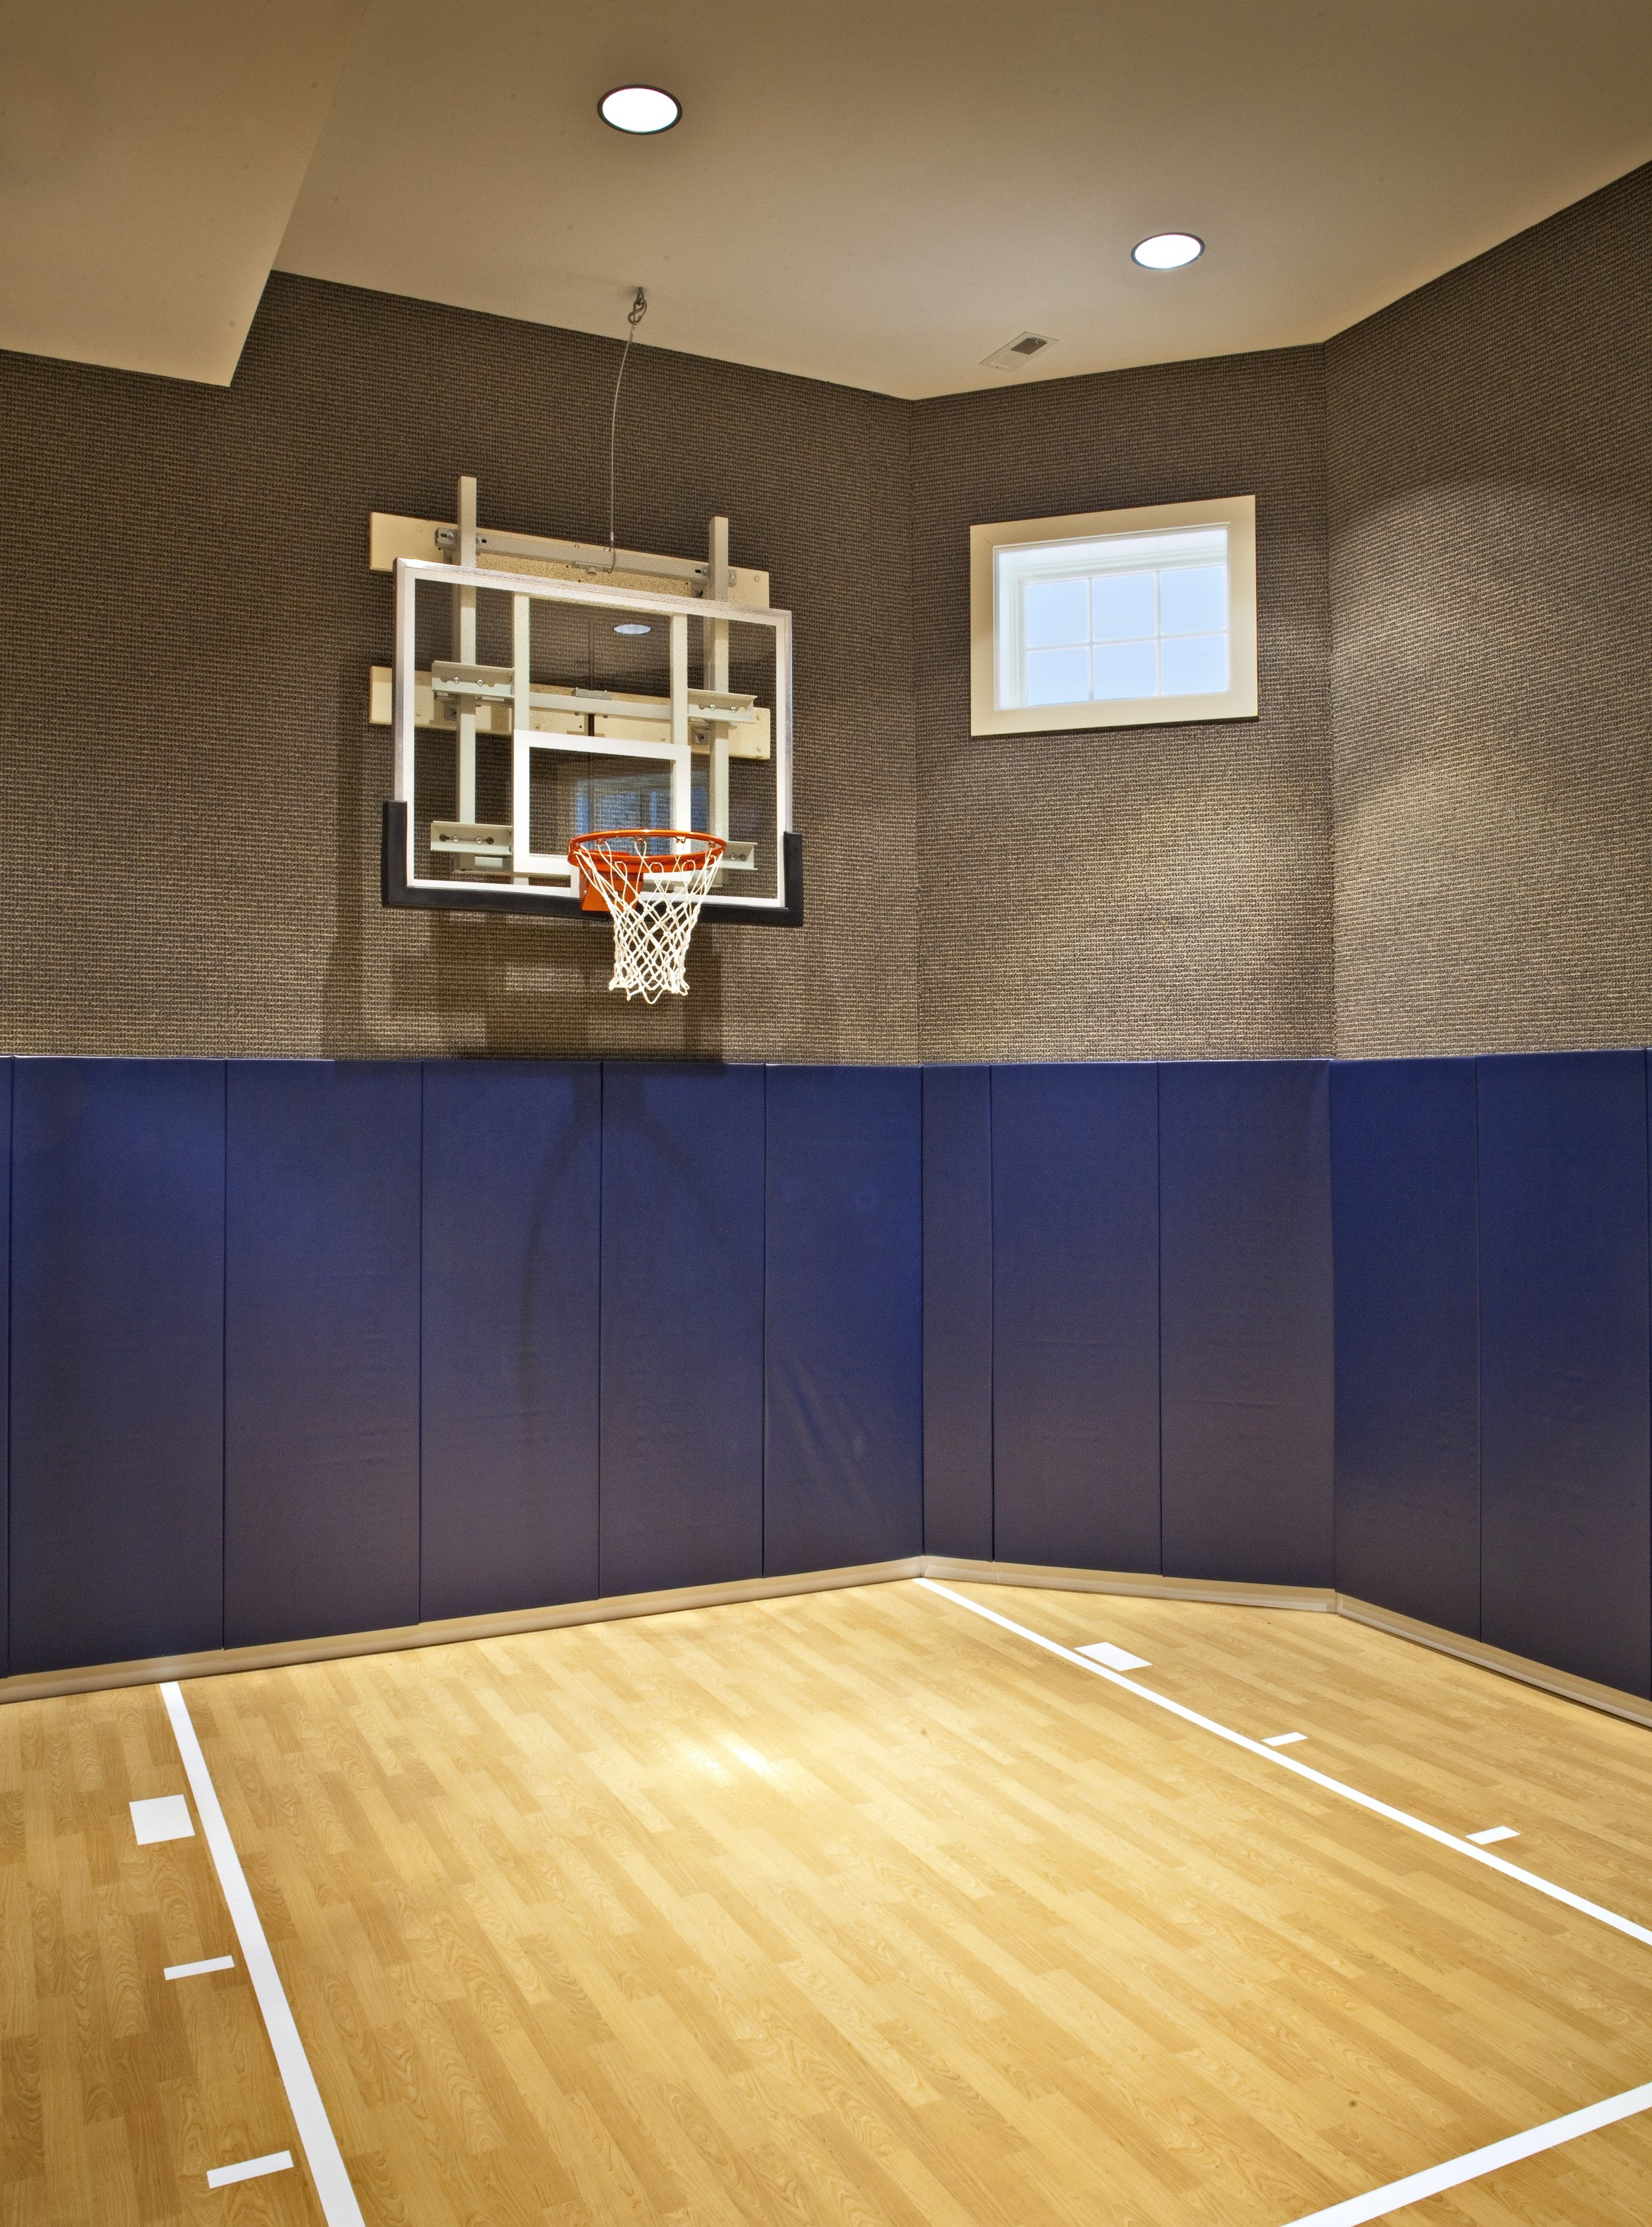 Indoor Sports Courts Home Additions Indoor Basketball Courts Swimming Pools Contractor Southampton